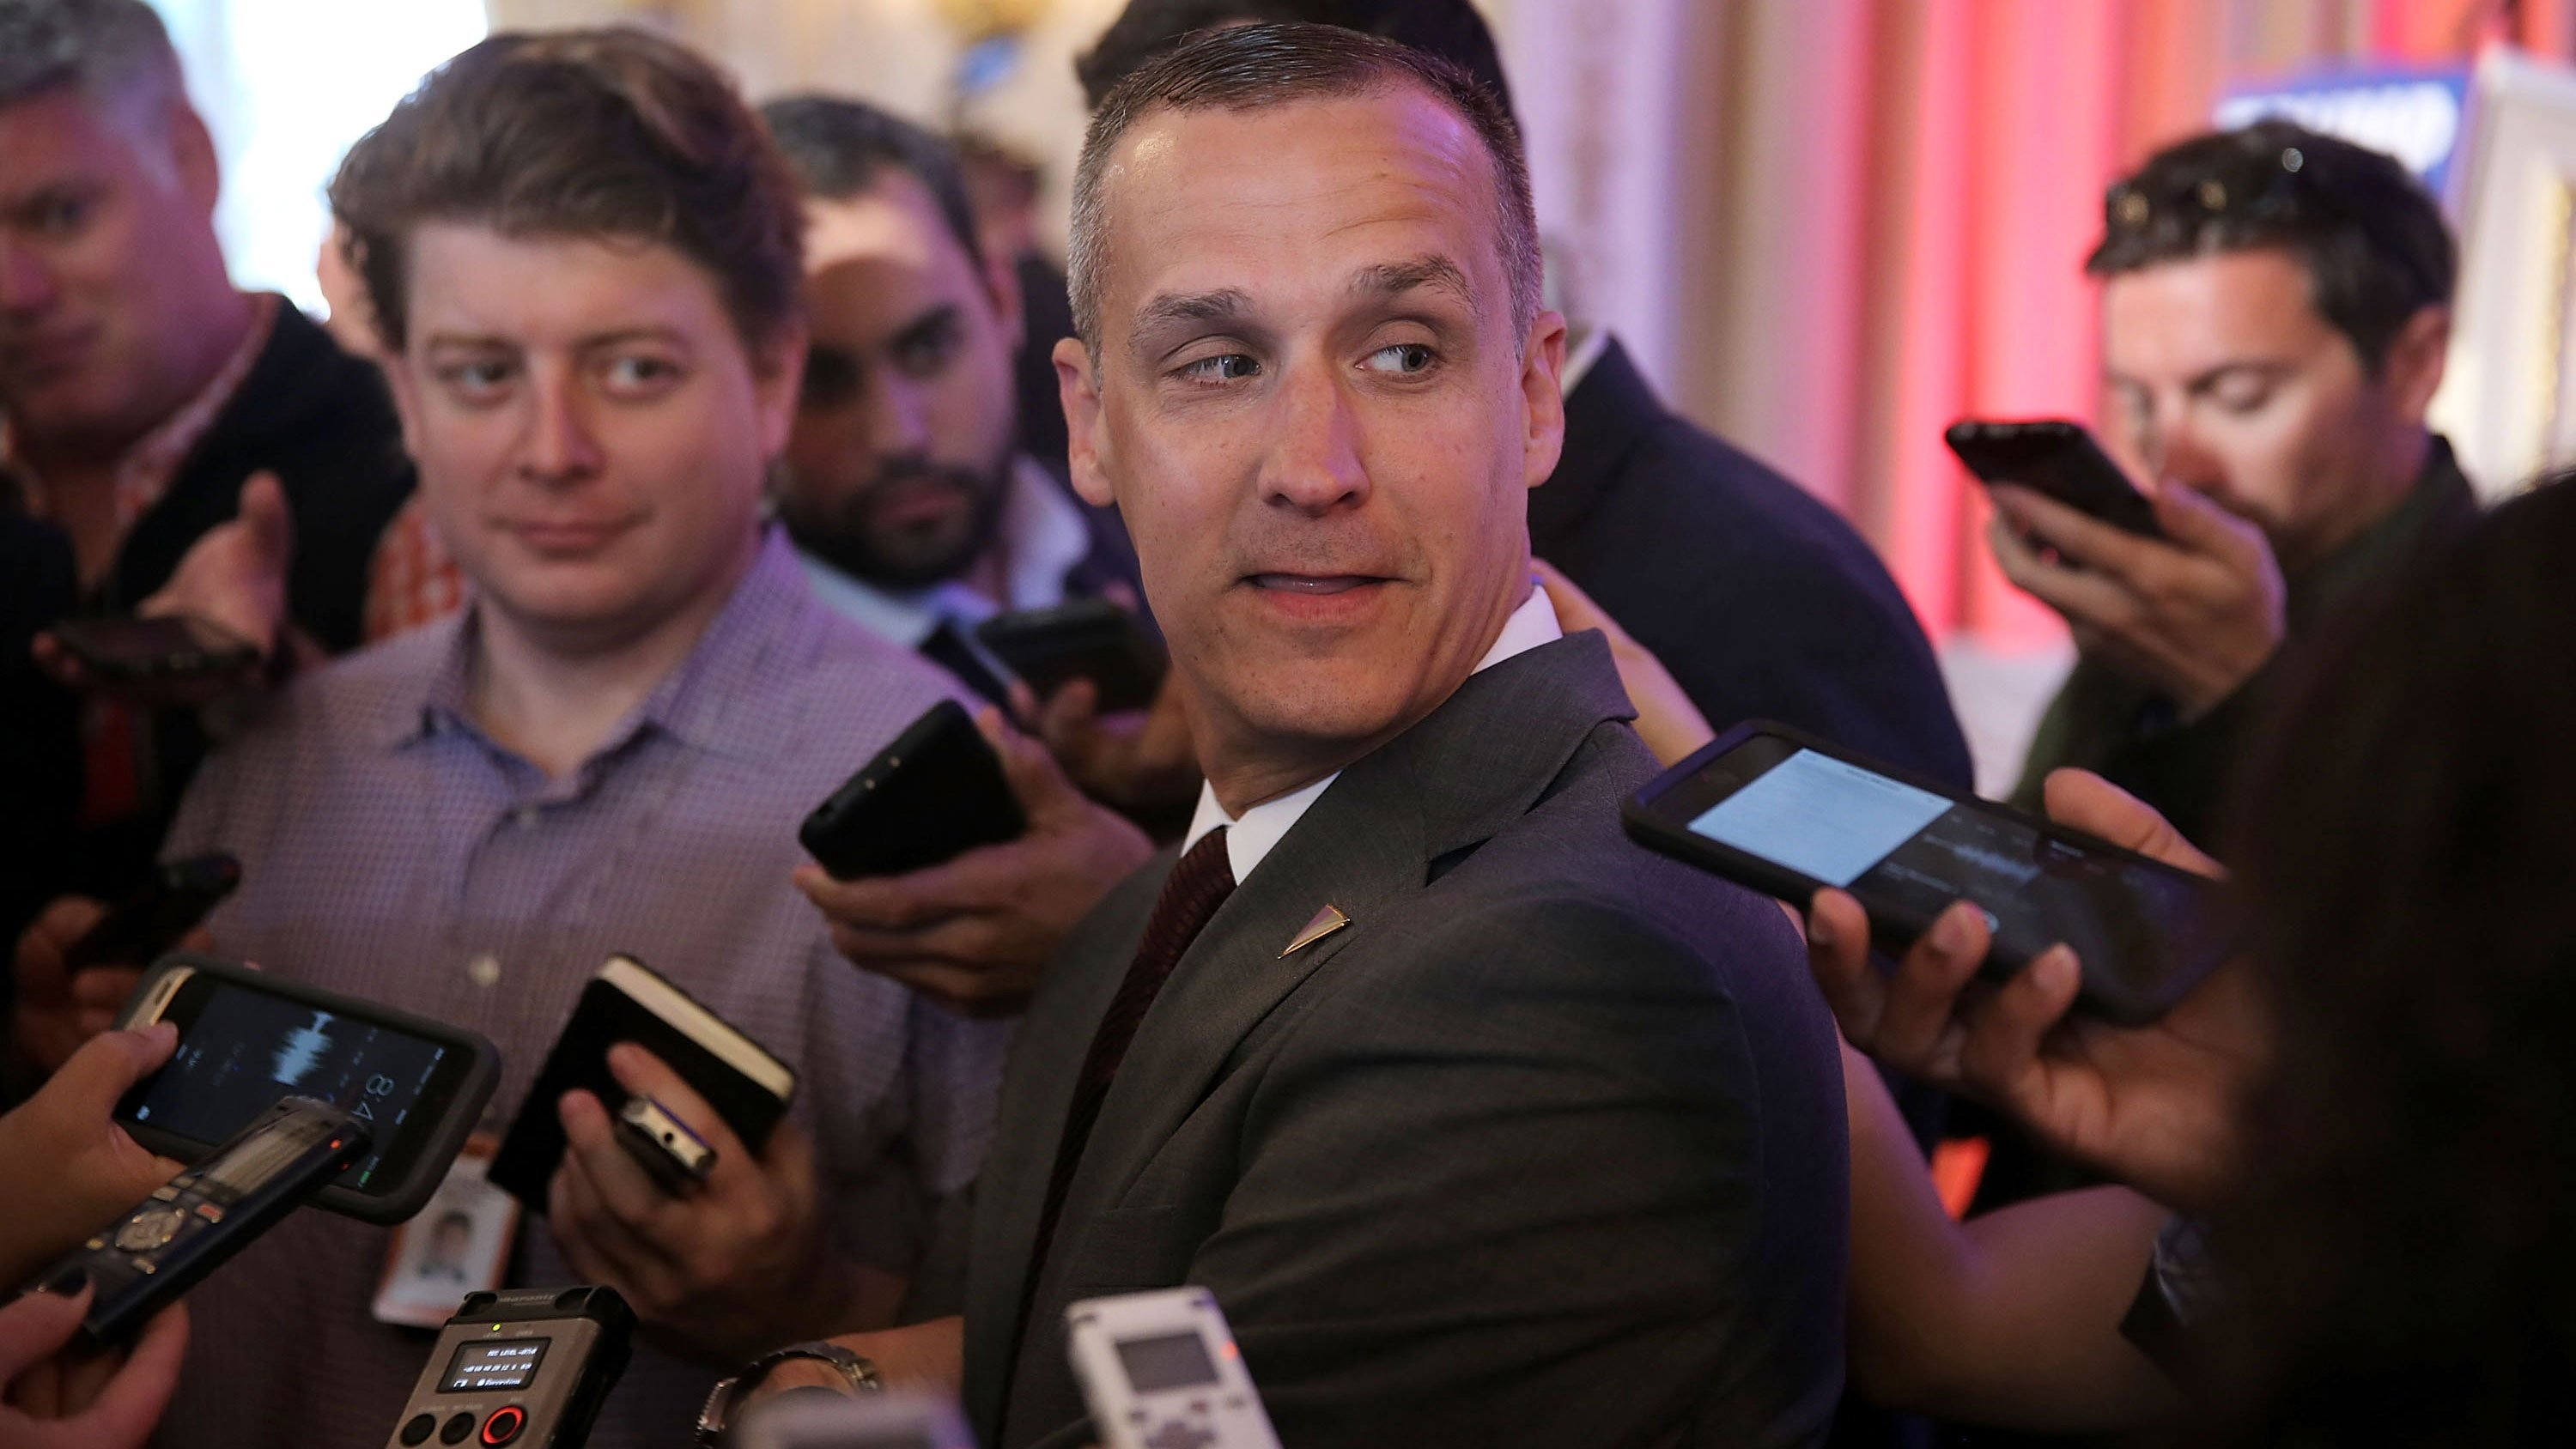 White House tells Lewandowski not to answer questions and asserts immunity for Dearborn and Porter